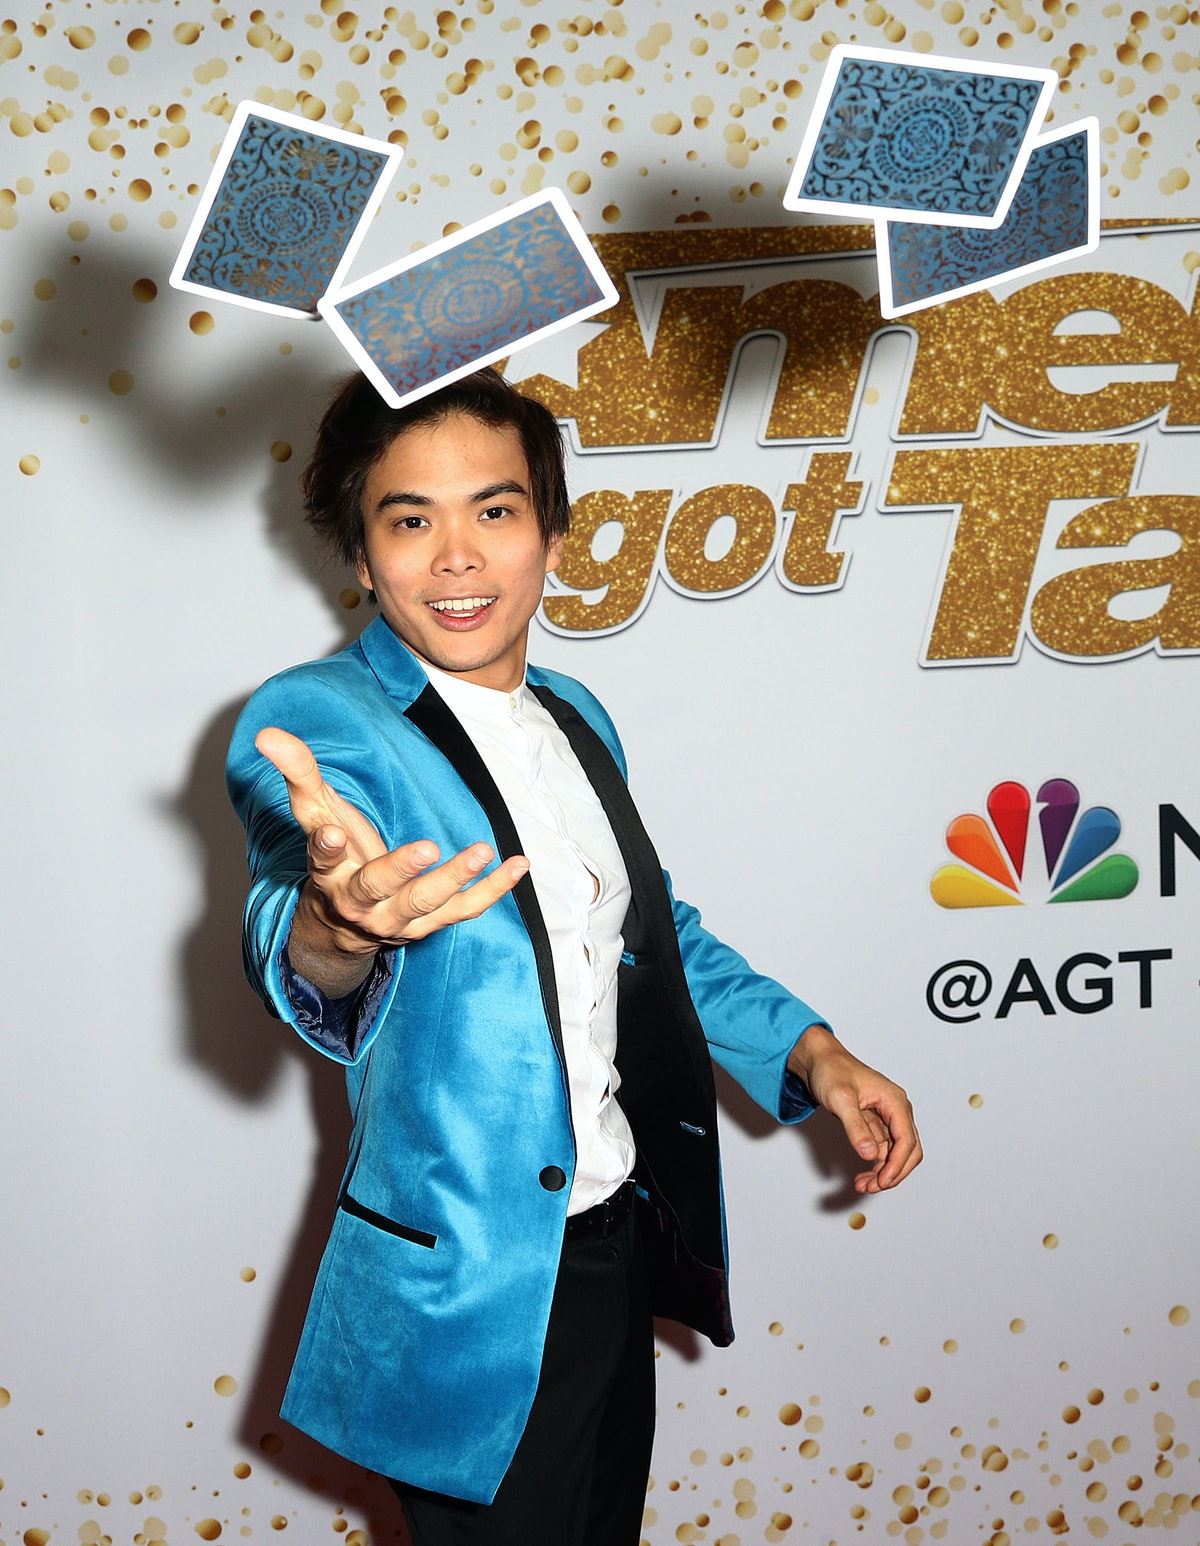 Will Shin Lim Tour? The 'America's Got Talent' Winner Has A Ton Of Fans thumbnail